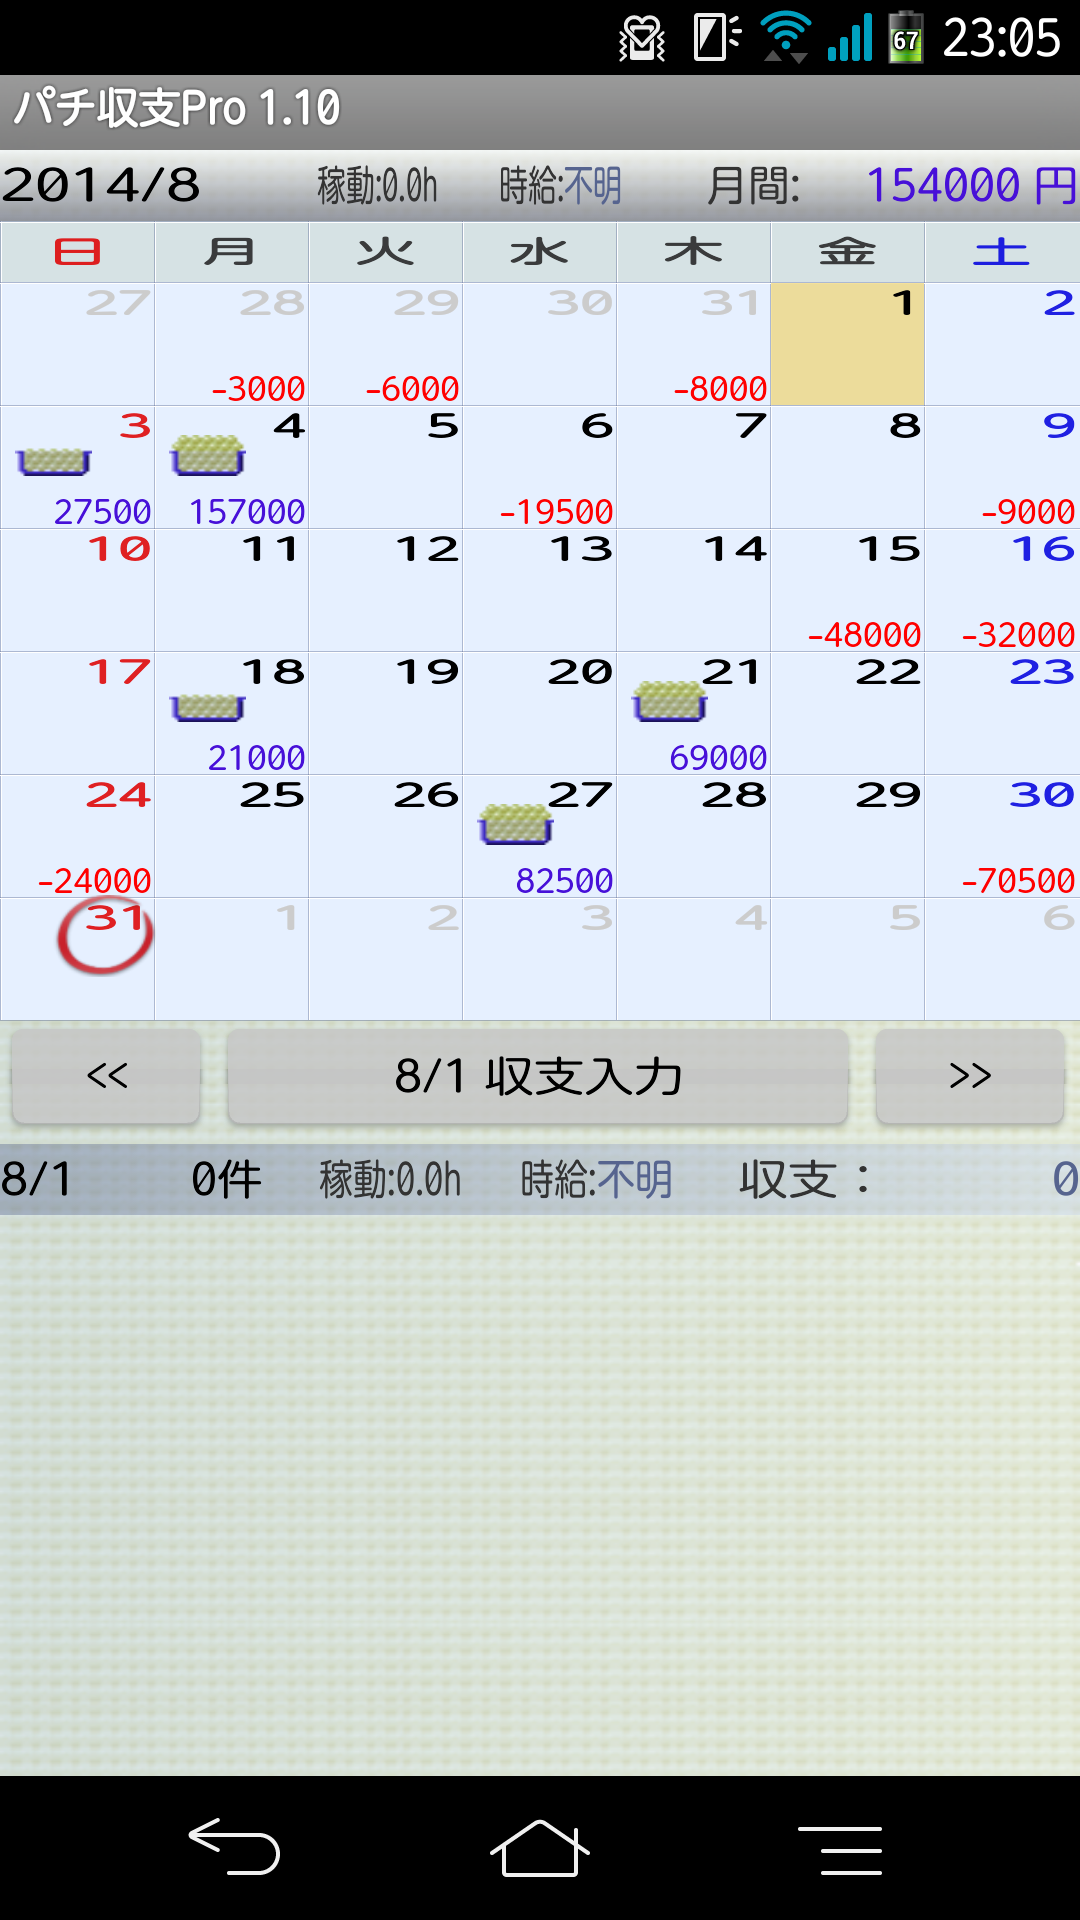 Screenshot_2014-08-31-23-05-08.png